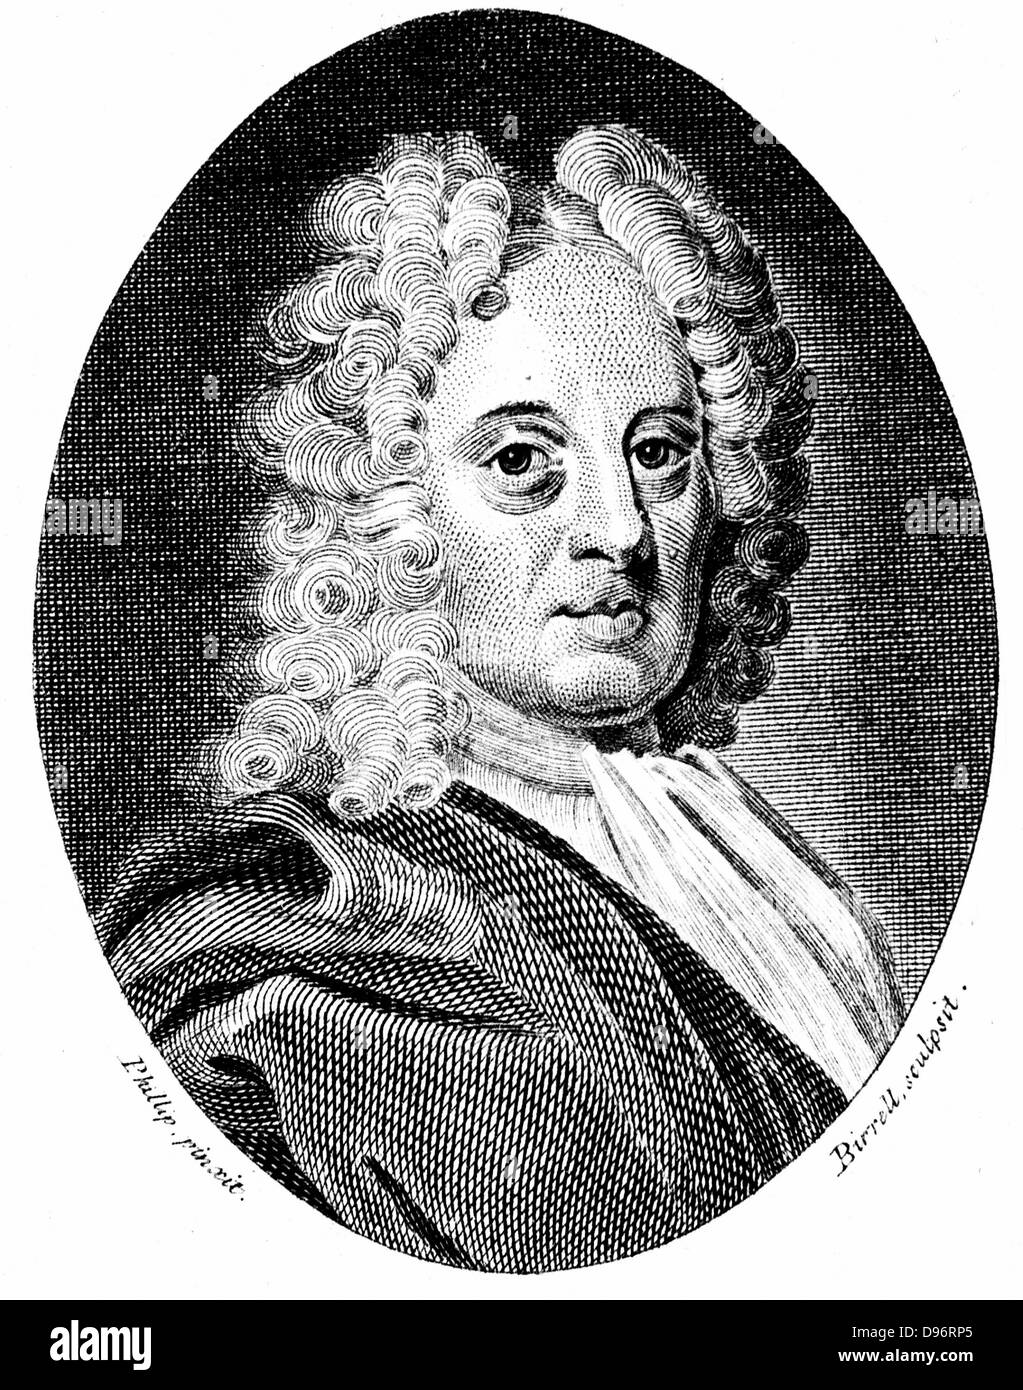 Edmond Halley (1656-1742) English astronomer and mathematician. Engraving after portrait of Richard Phillips painted - Stock Image